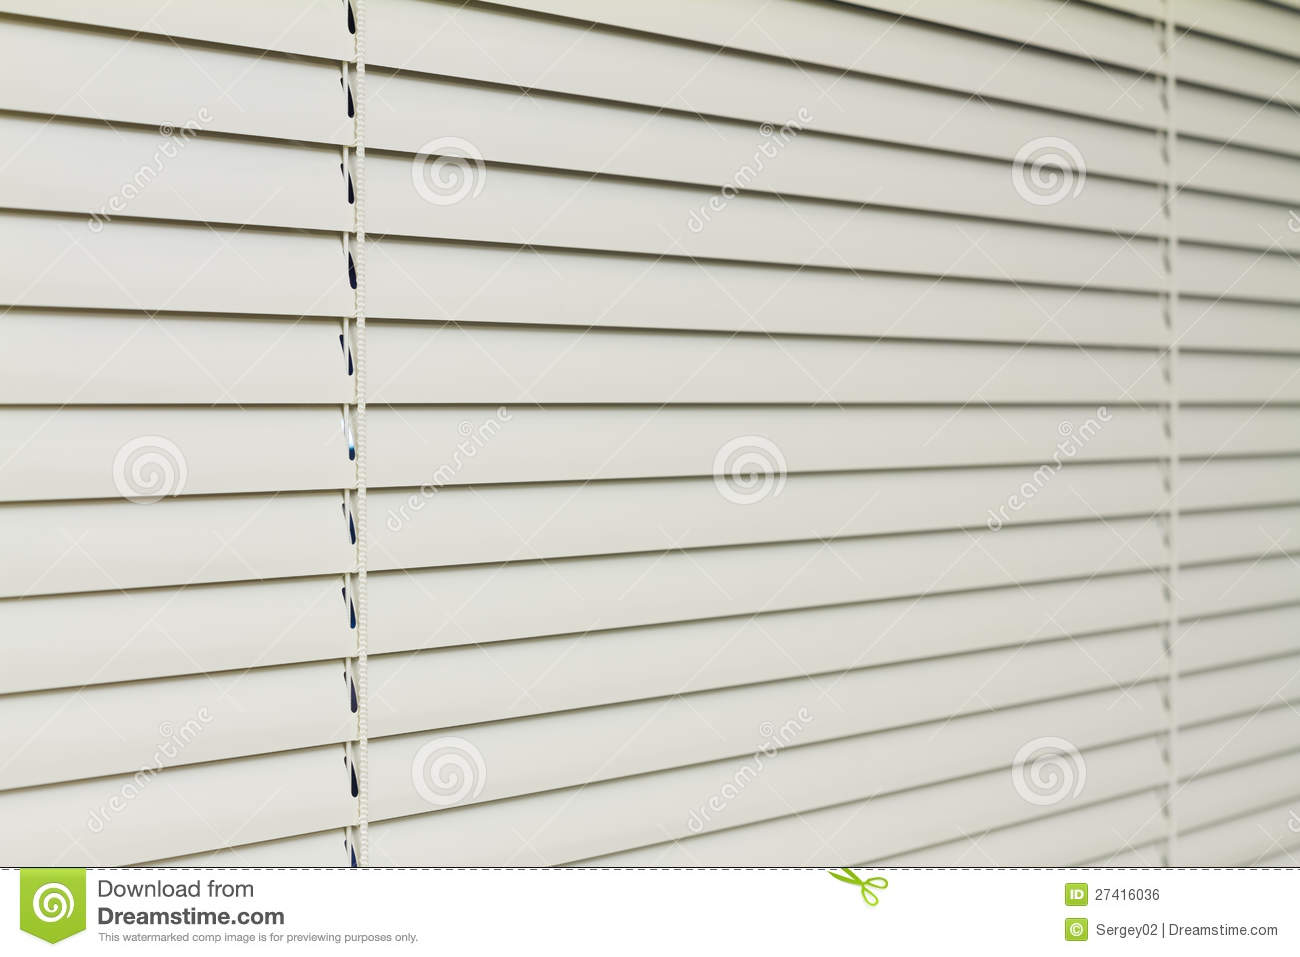 window awnings photo and blinds slats coverings of shade a horizontal shades behind metal stock